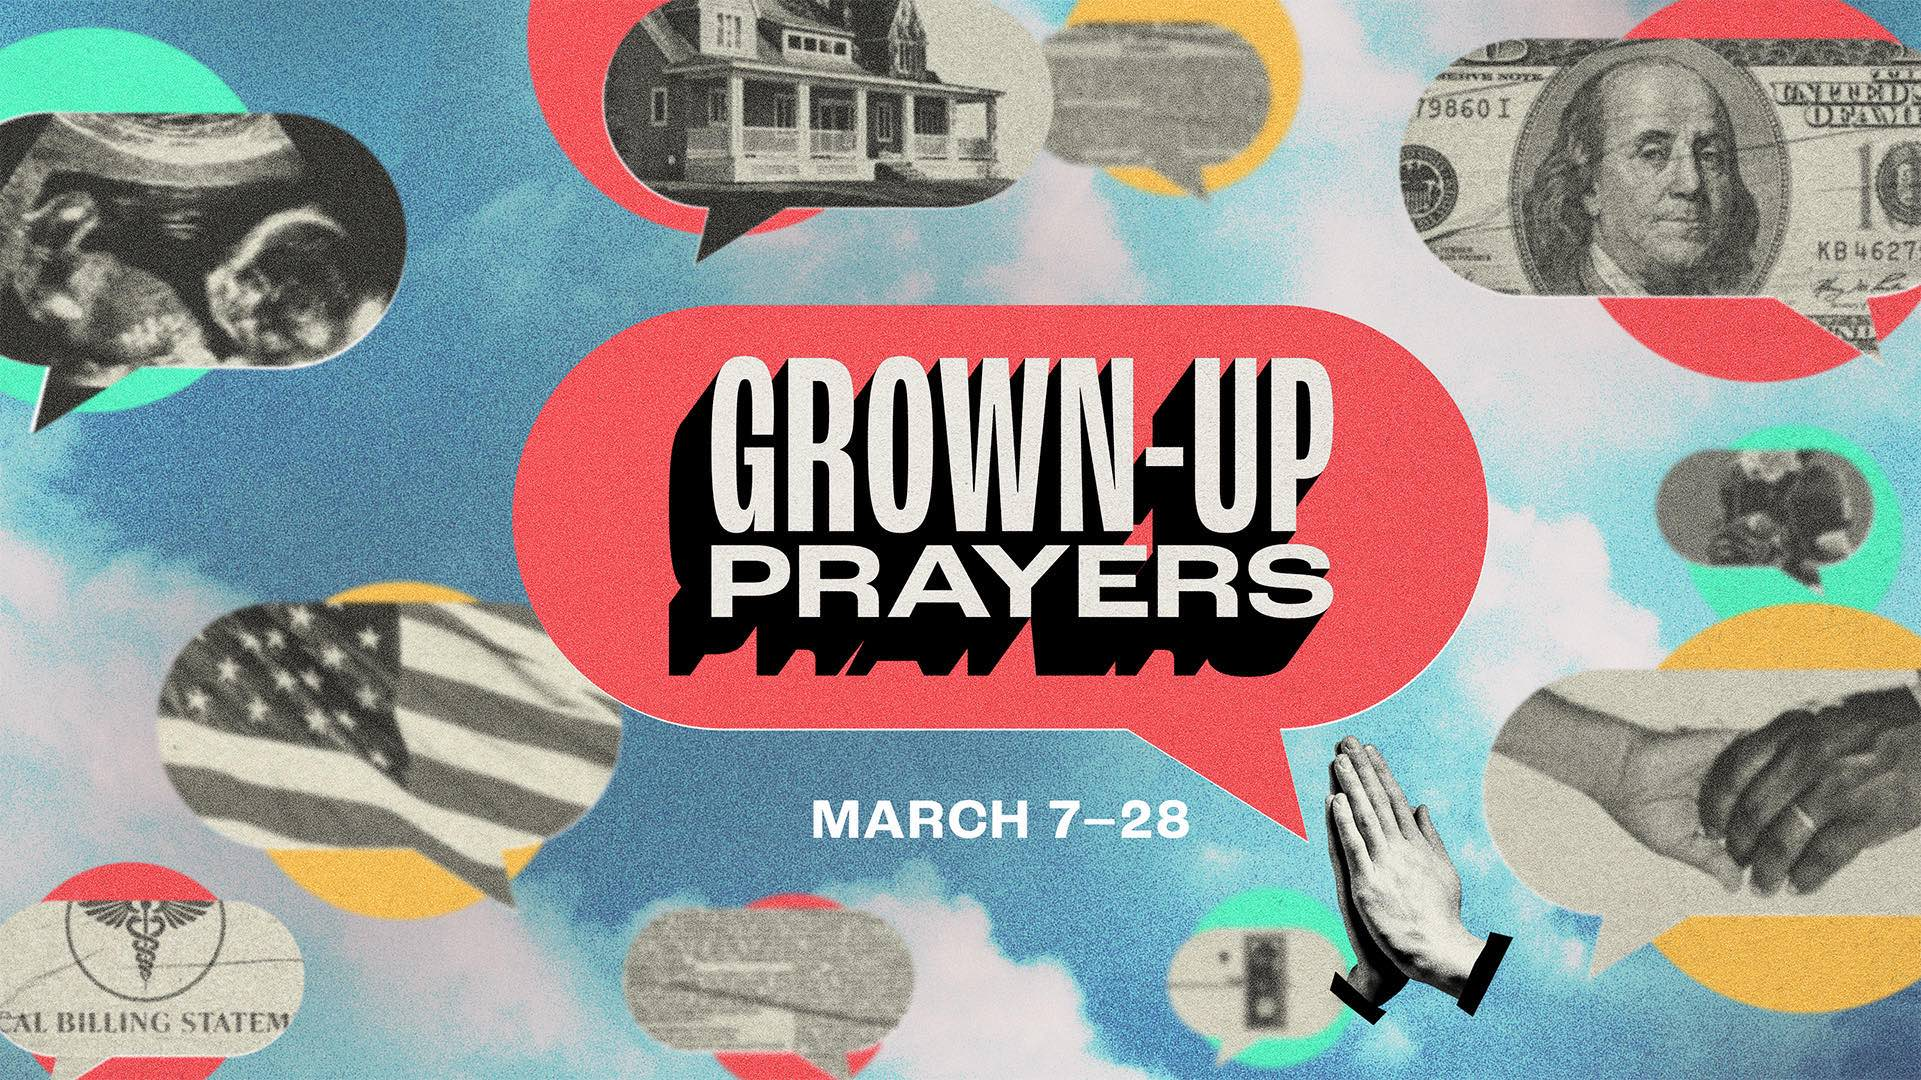 Grown-Up Prayers